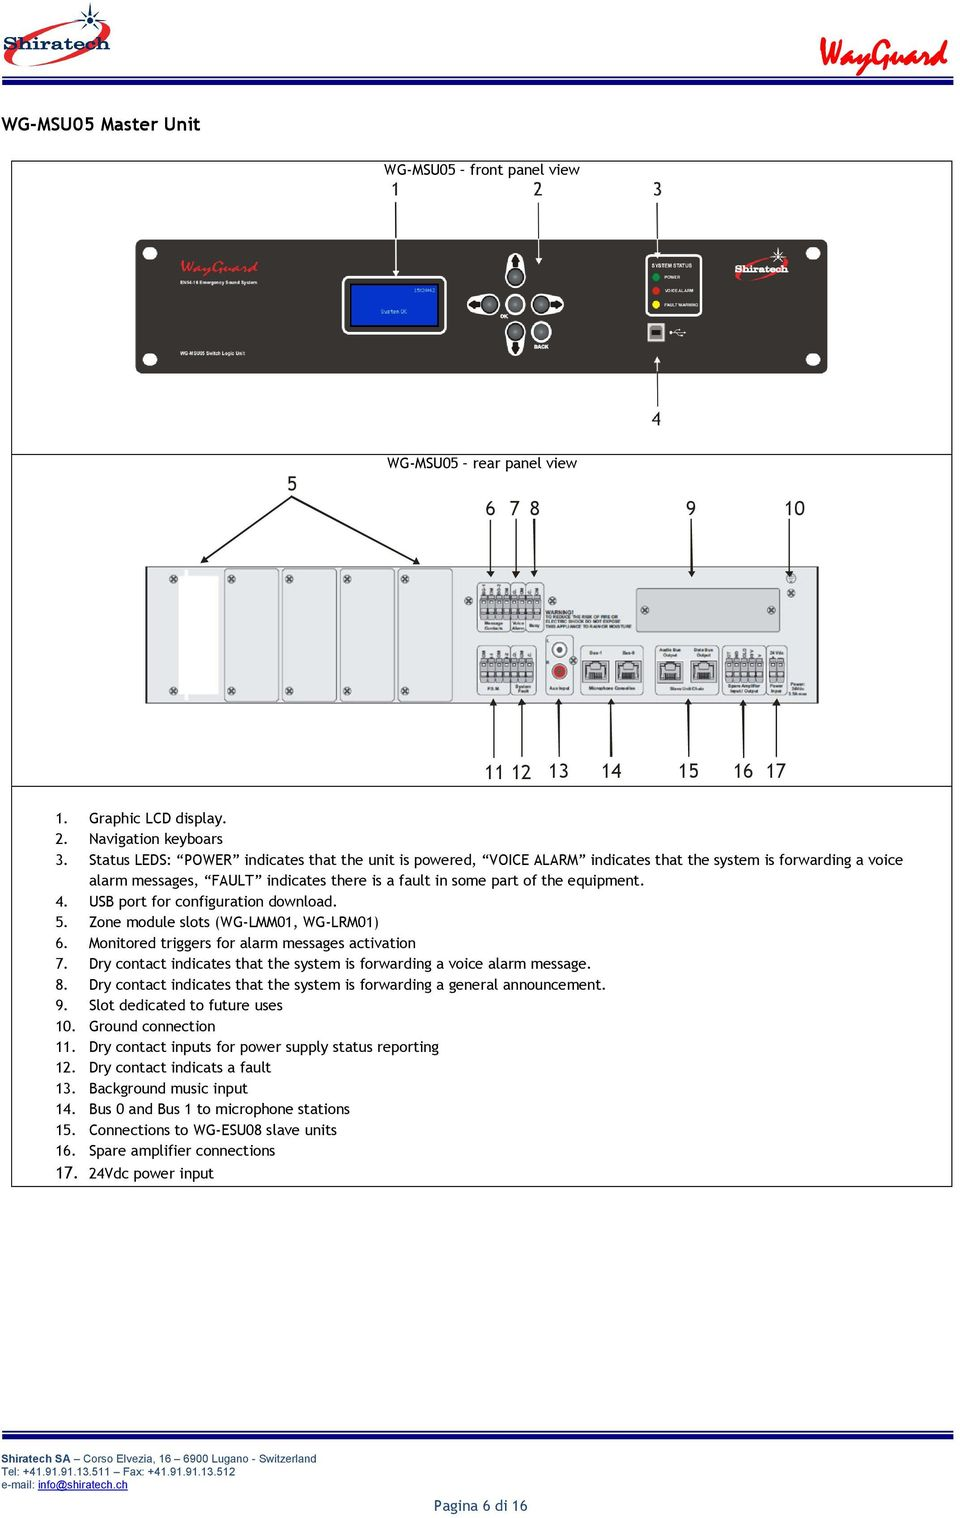 USB port for configuration download. 5. Zone module slots (WG-LMM01, WG-LRM01) 6. Monitored triggers for alarm messages activation 7.